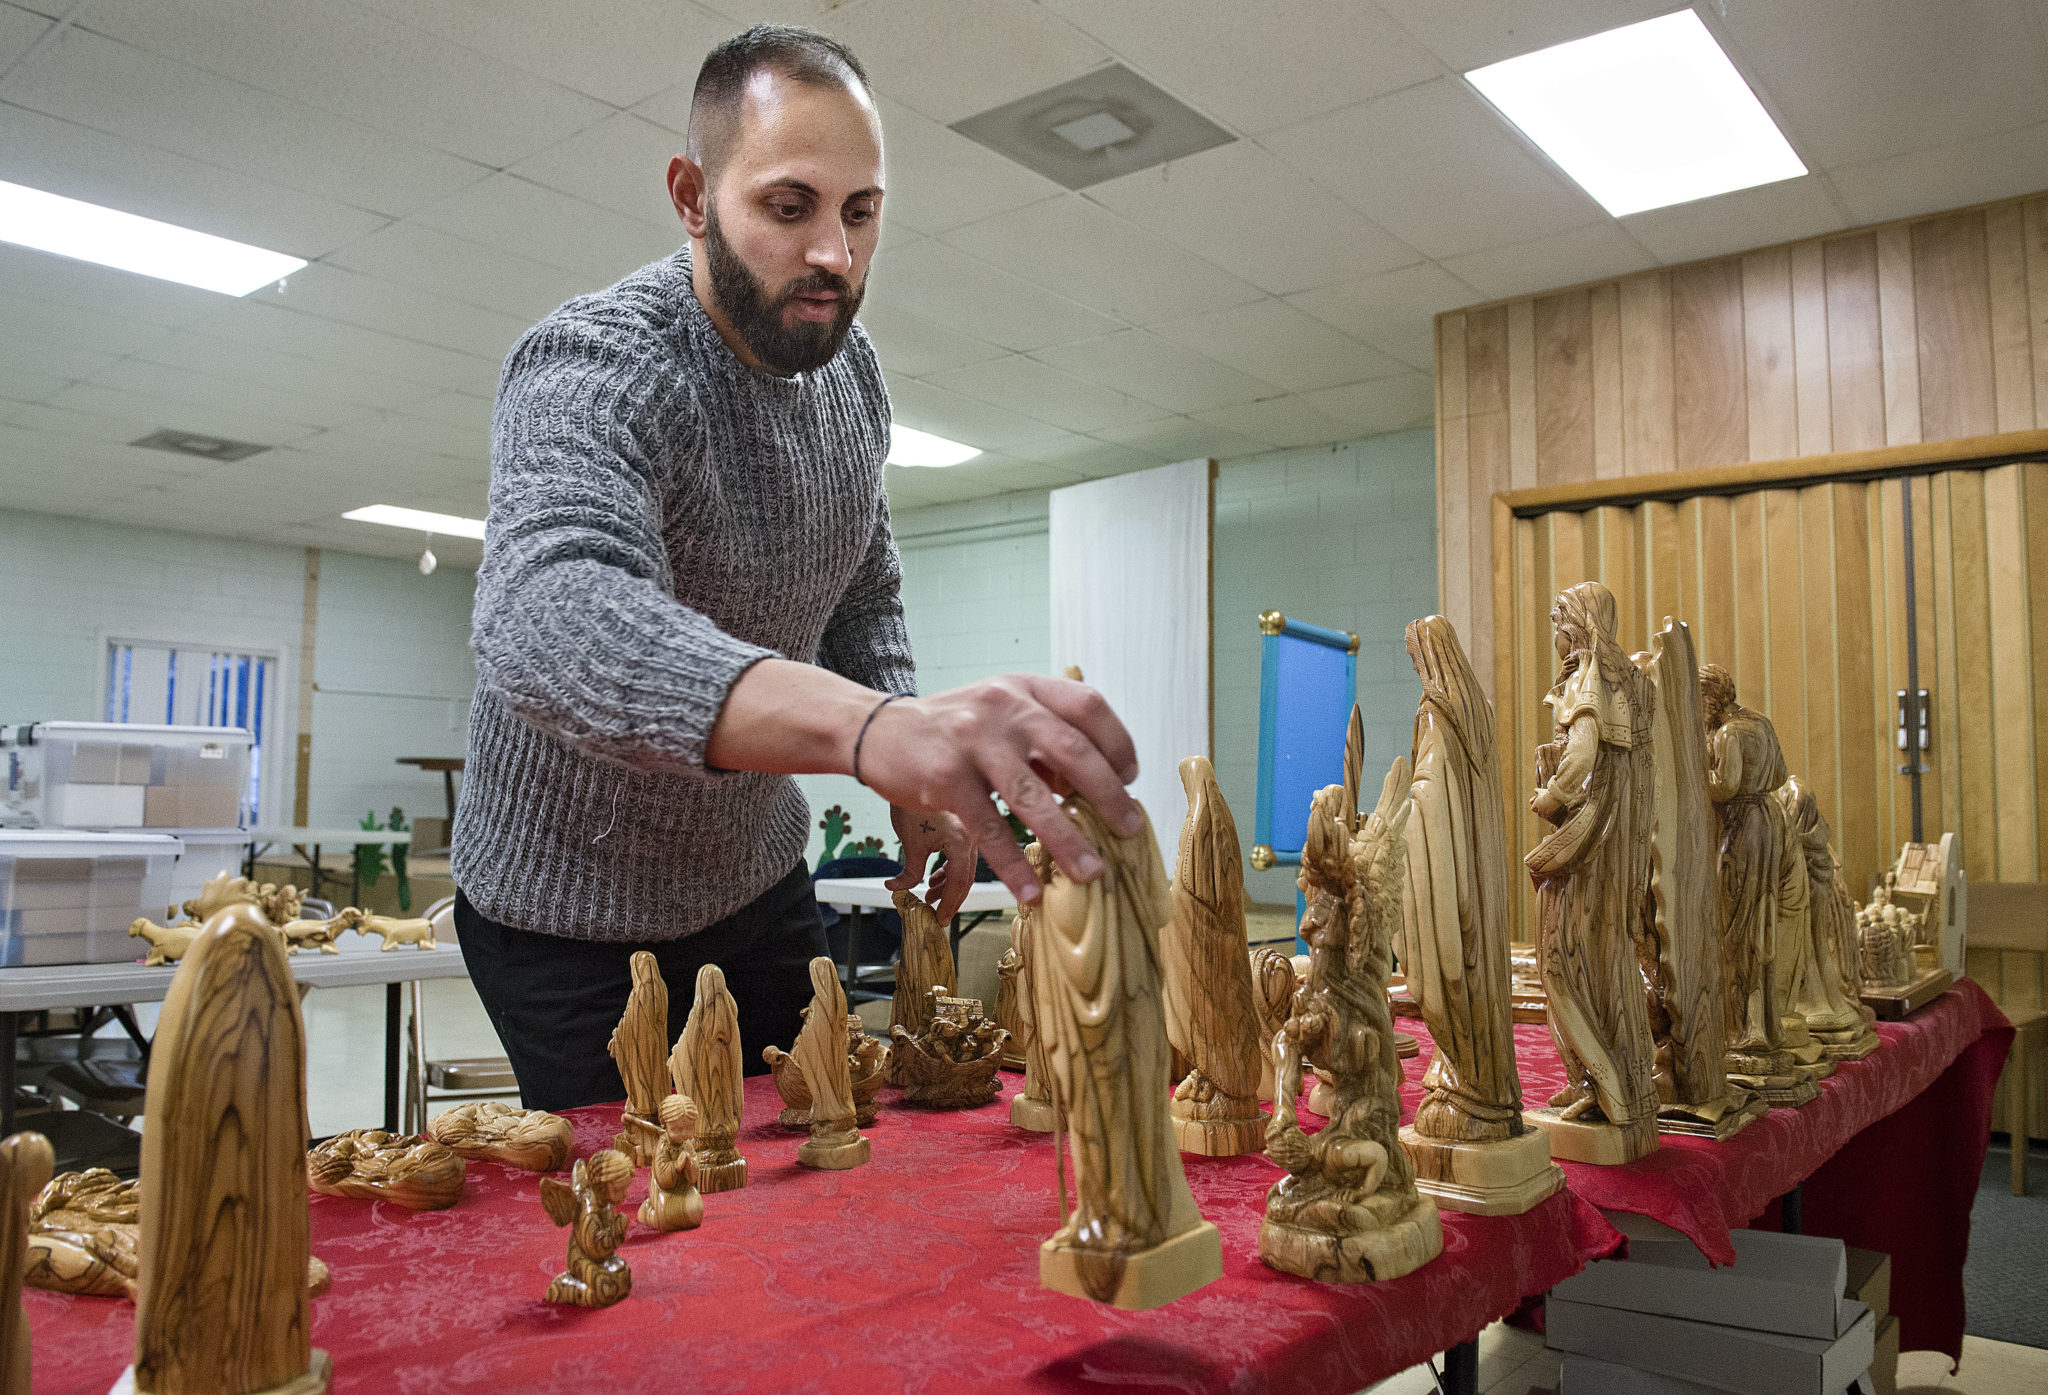 Woodcarvings support bethlehem olive woodcarvers news